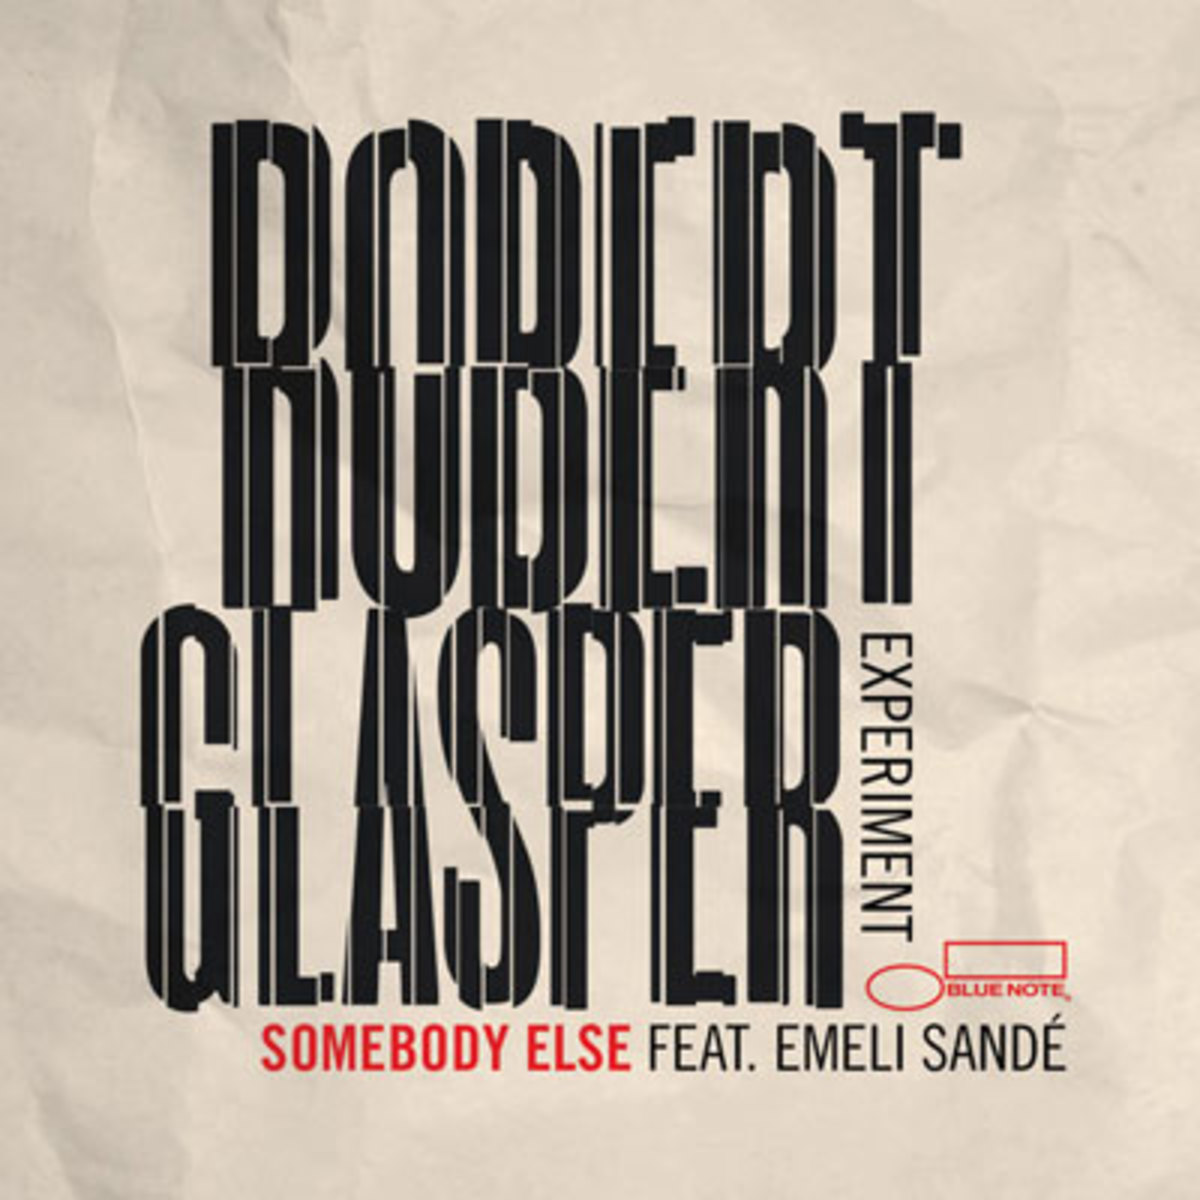 Robert Glasper Experiment ft. Emeli Sandé - Somebody Else